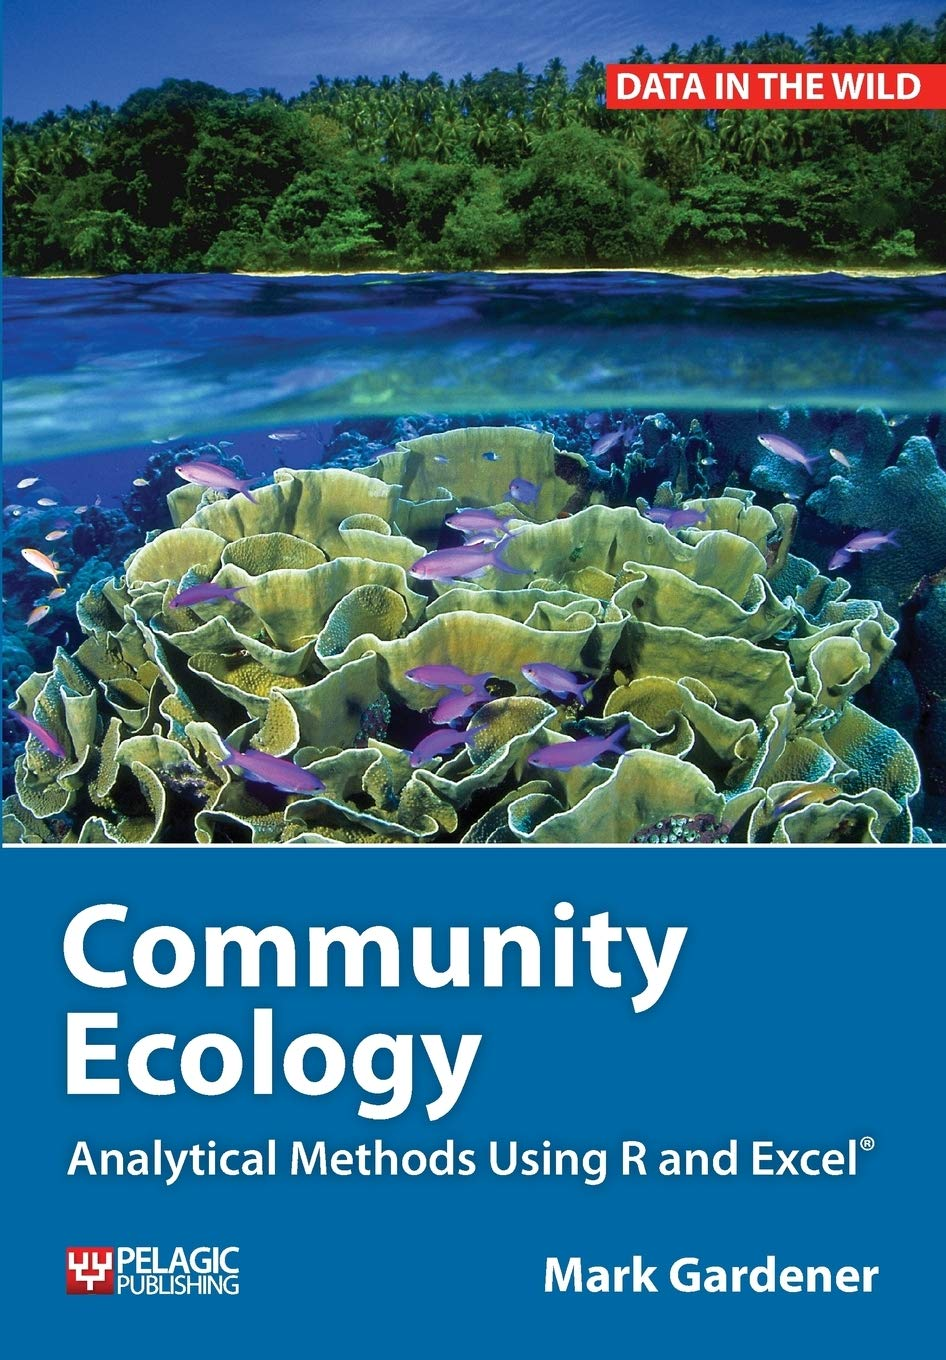 Image OfCommunity Ecology: Analytical Methods Using R And Excel